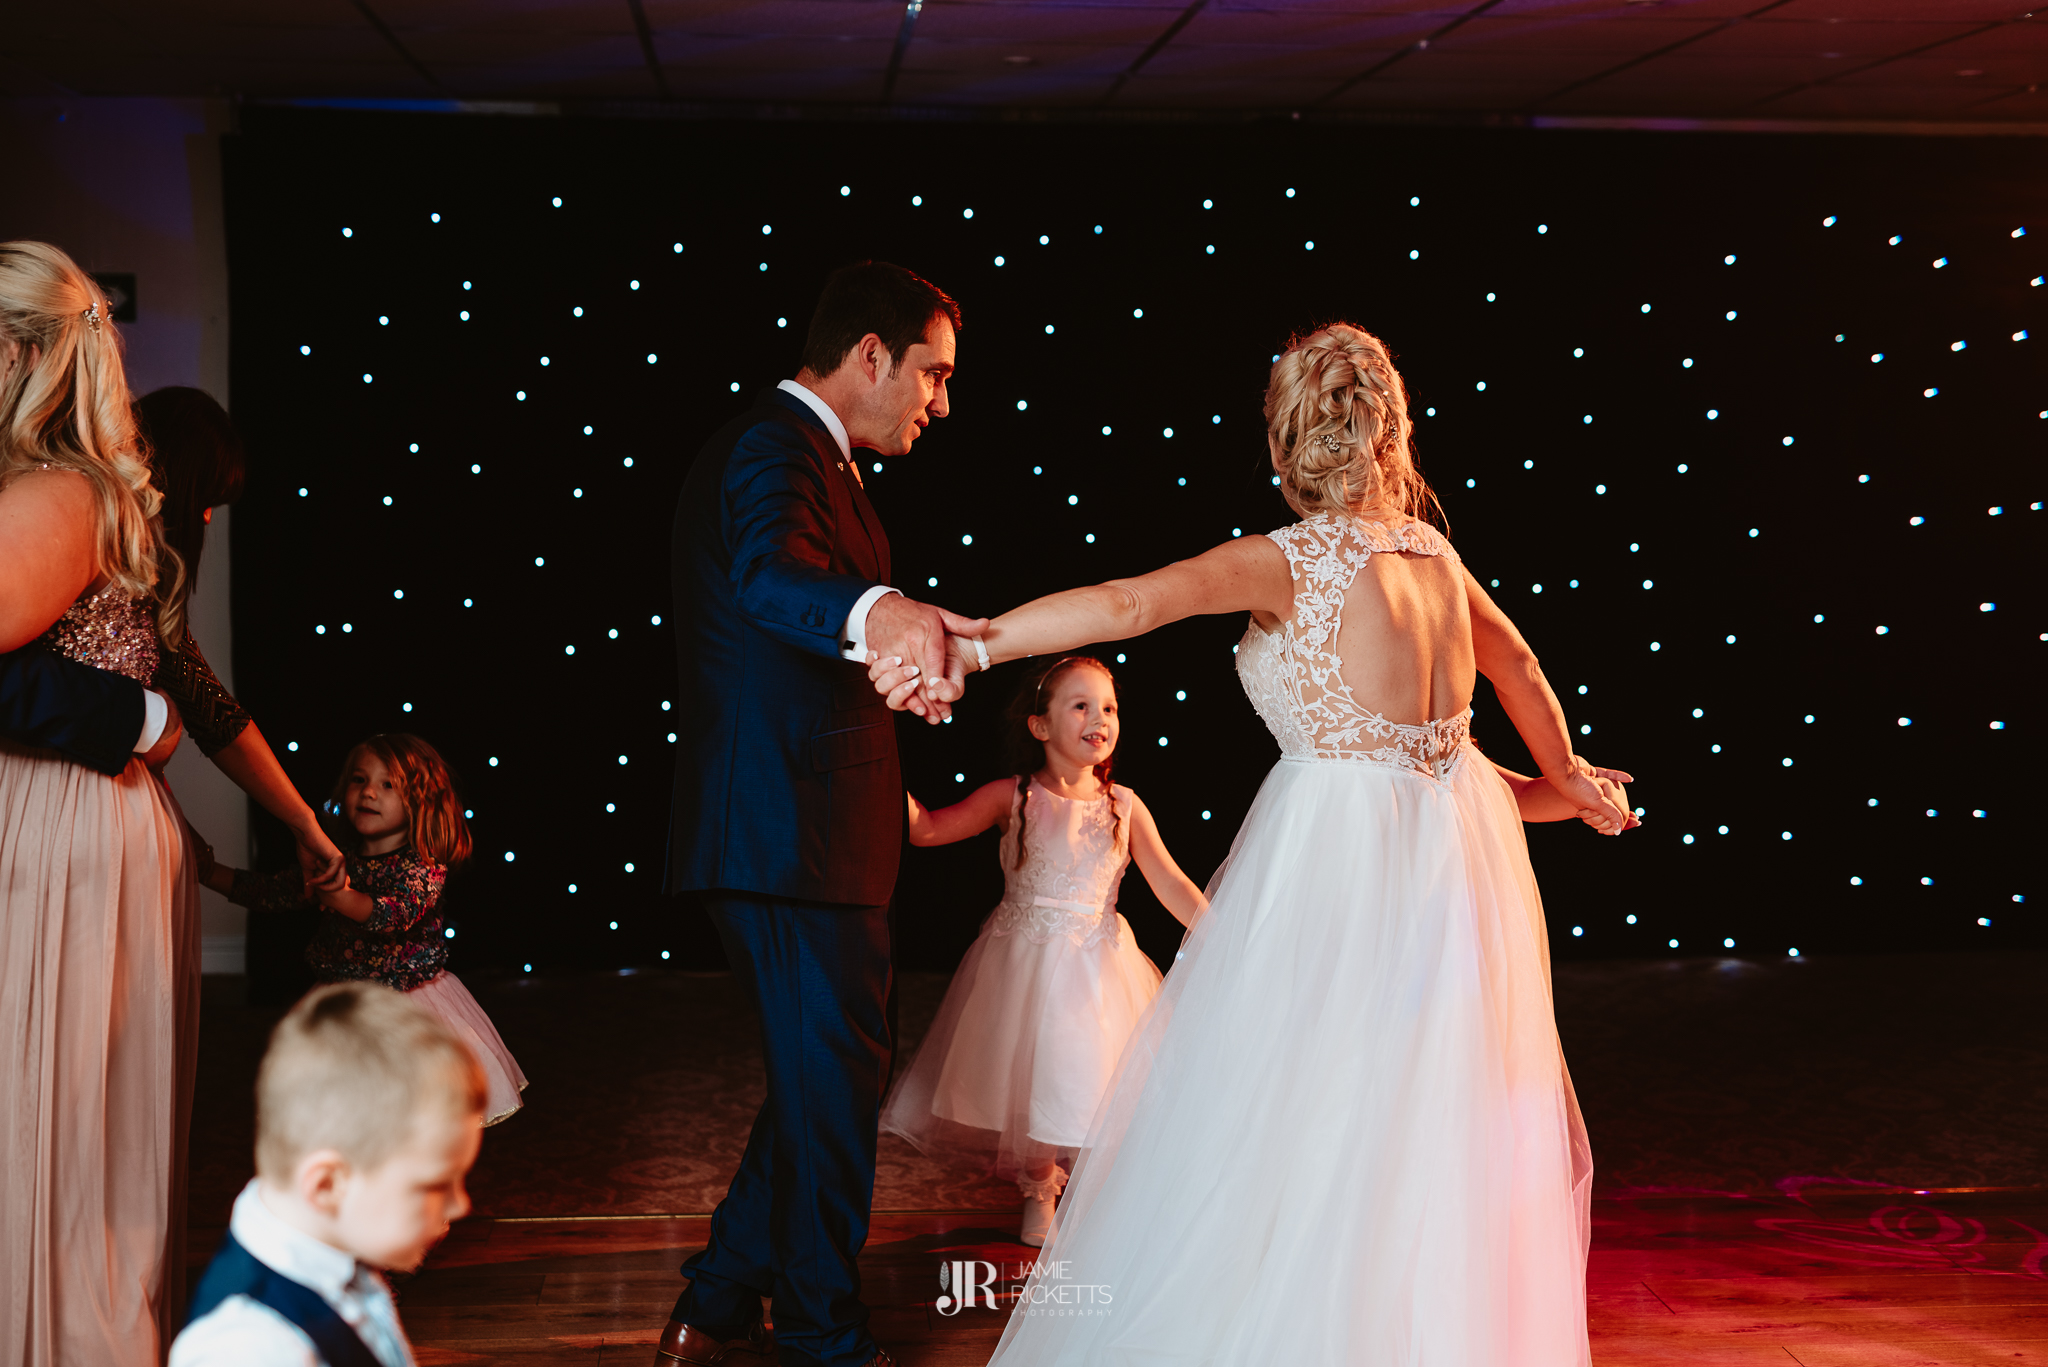 Wroxeter-Hotel-Wedding-Photography-In-Shropshire-By-Shropshire-Wedding-Photographer-Jamie-Ricketts-222.JPG